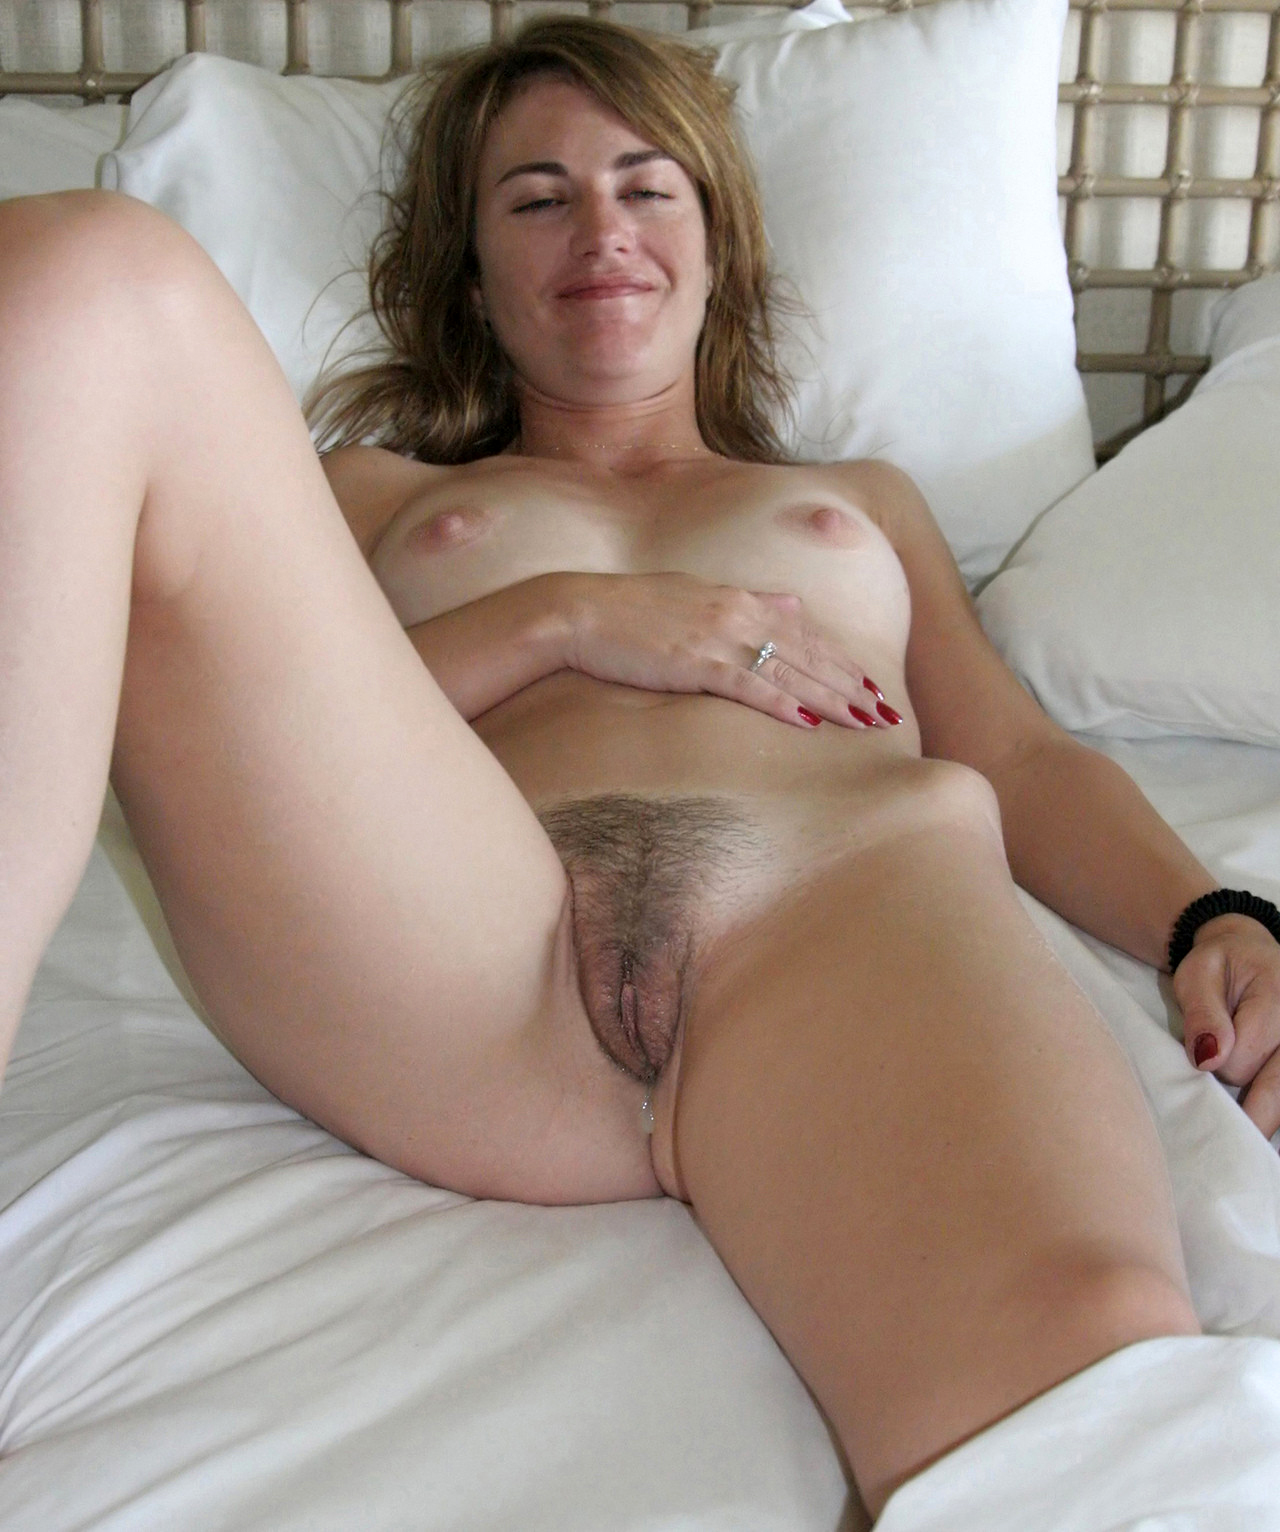 hairy pussy pics mature